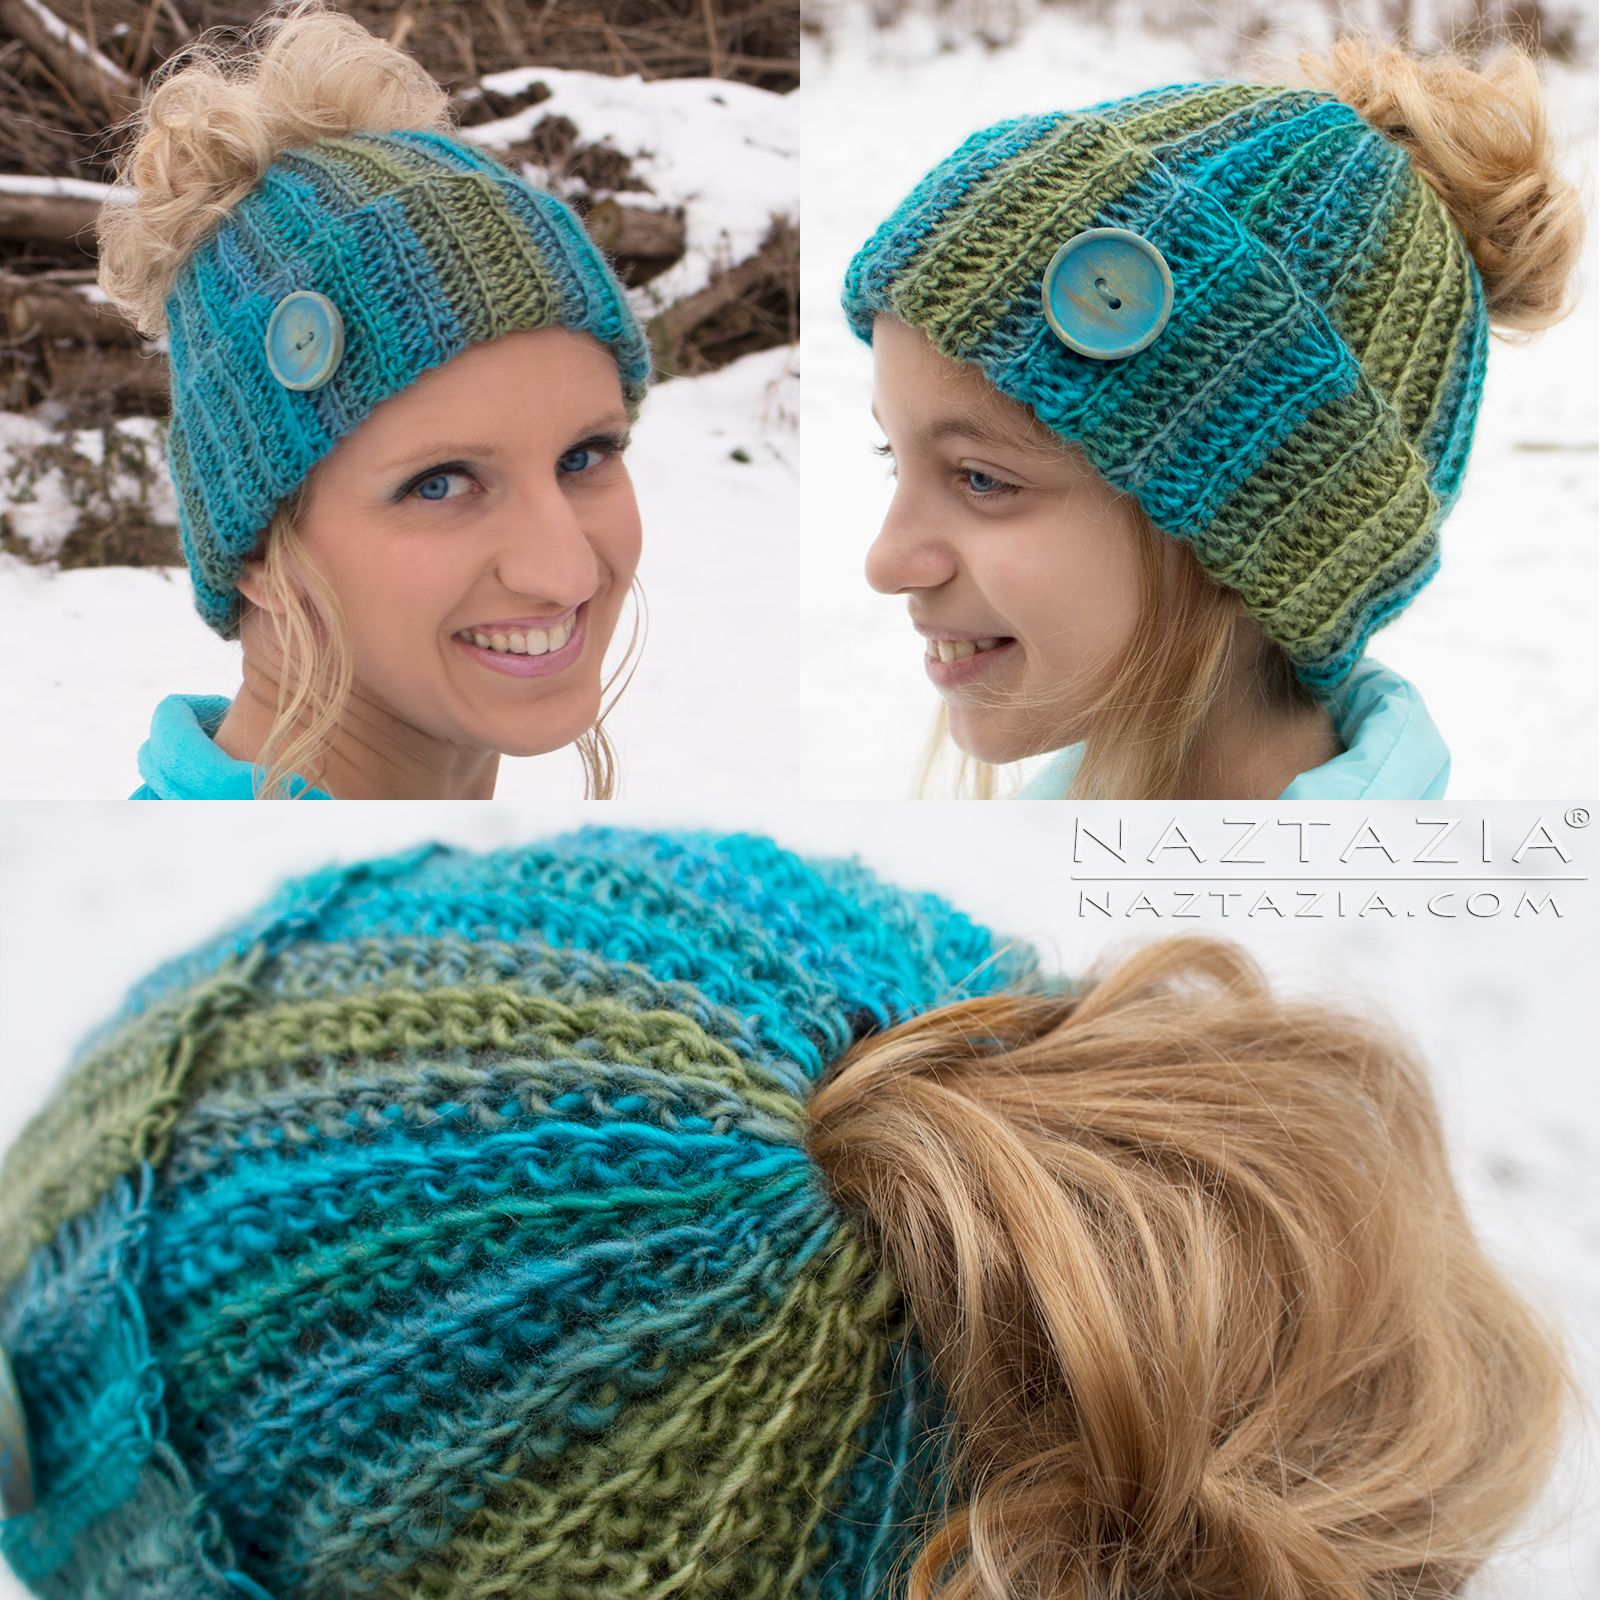 ab333d4217151 DIY Free Pattern and YouTube Tutorial Video for Crochet Ribbed Bun Hat - Messy  Bun Hat - by Donna Wolfe from Naztazia